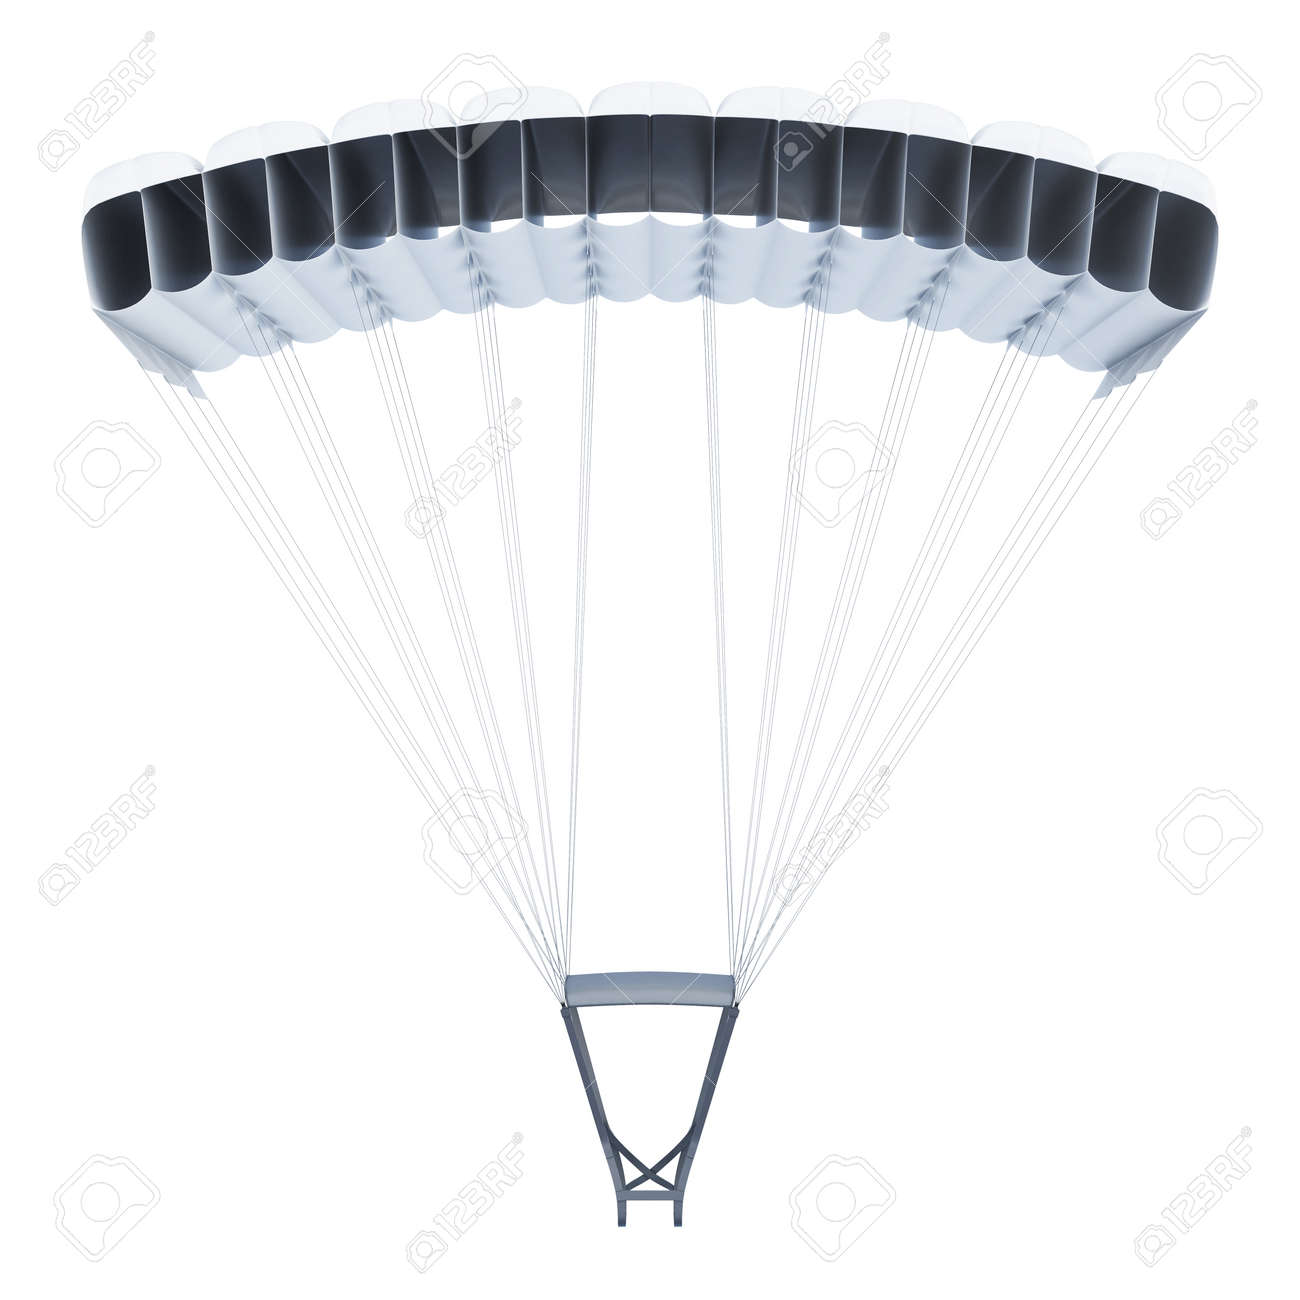 Frontal image of a parachute on white background  3d rendering